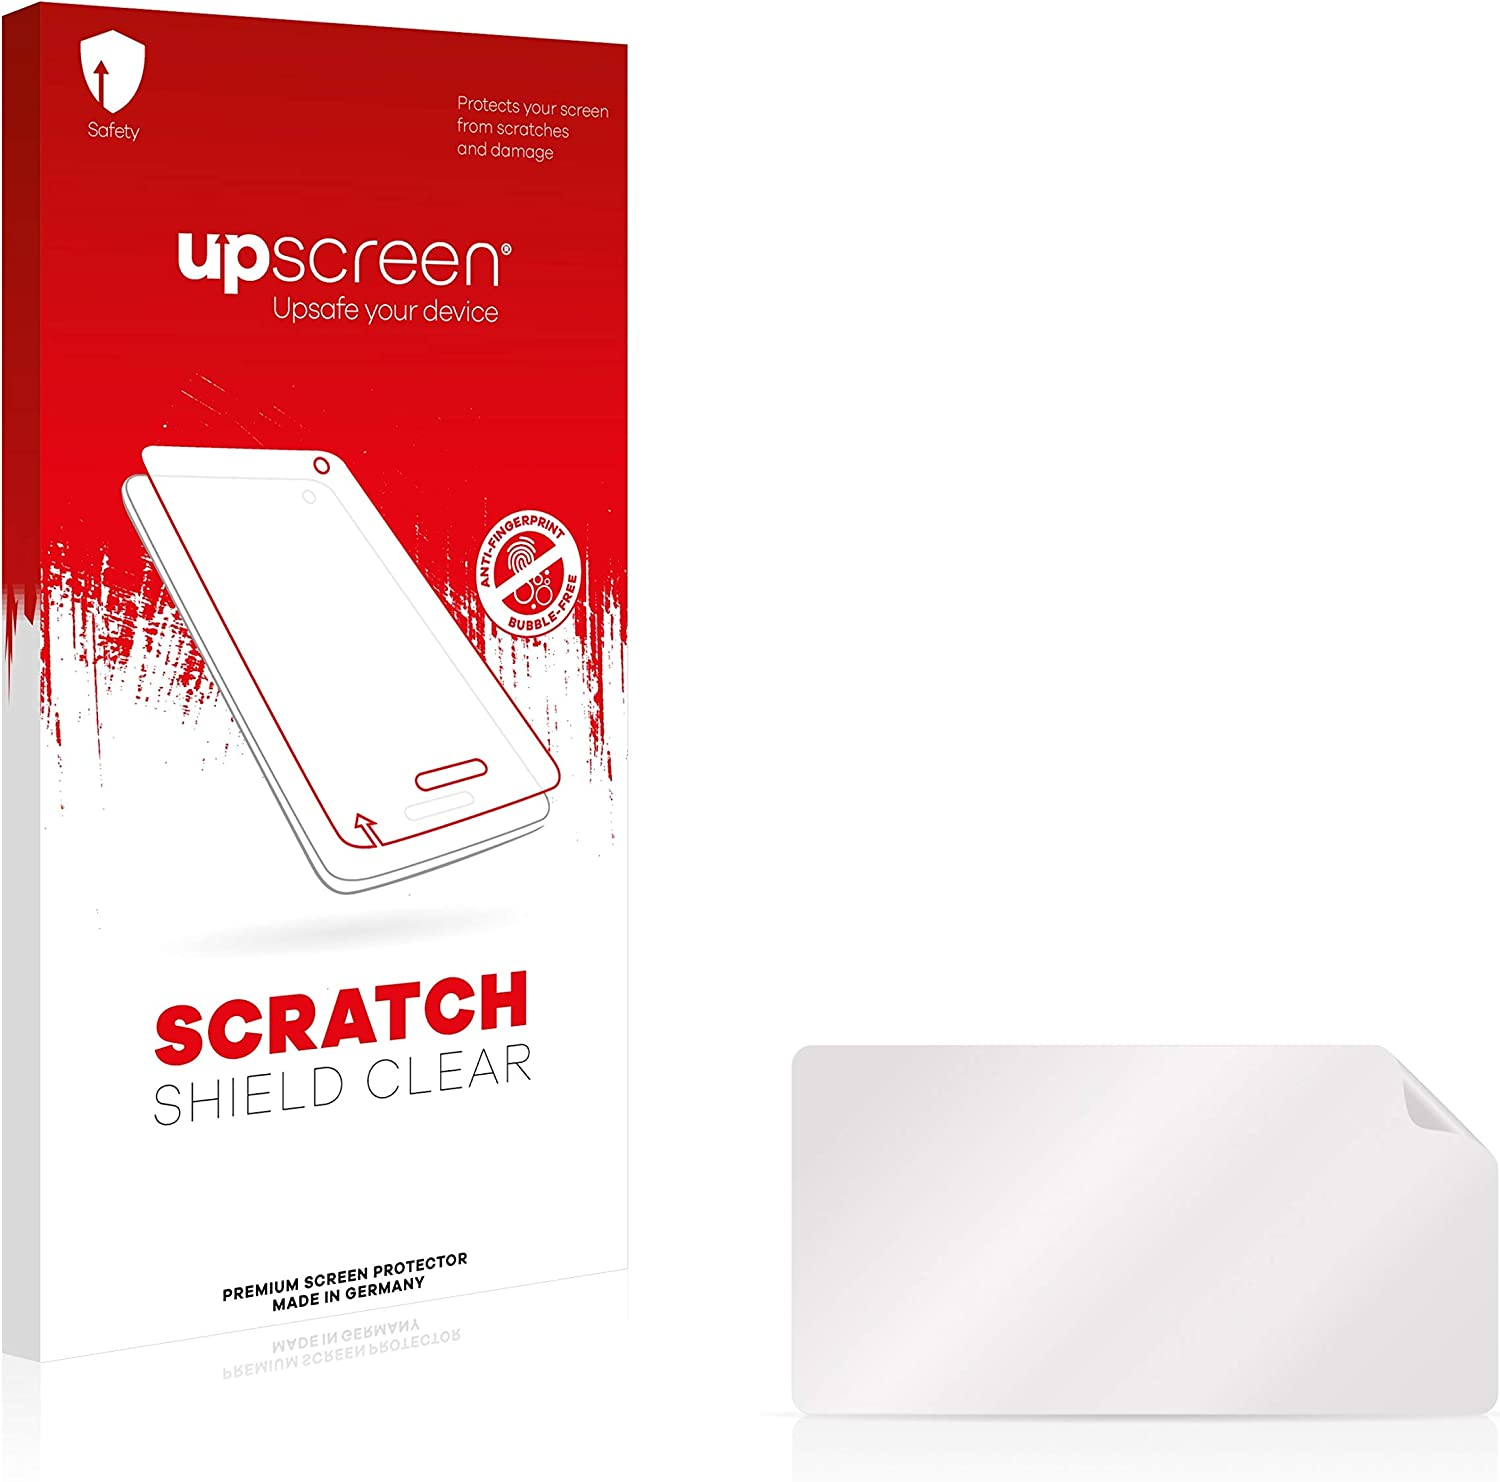 Matte and Anti-Glare Multitouch Optimized Strong Scratch Protection Reflection Shield Matte Screen Protector for Atos Worldline Yomani upscreen